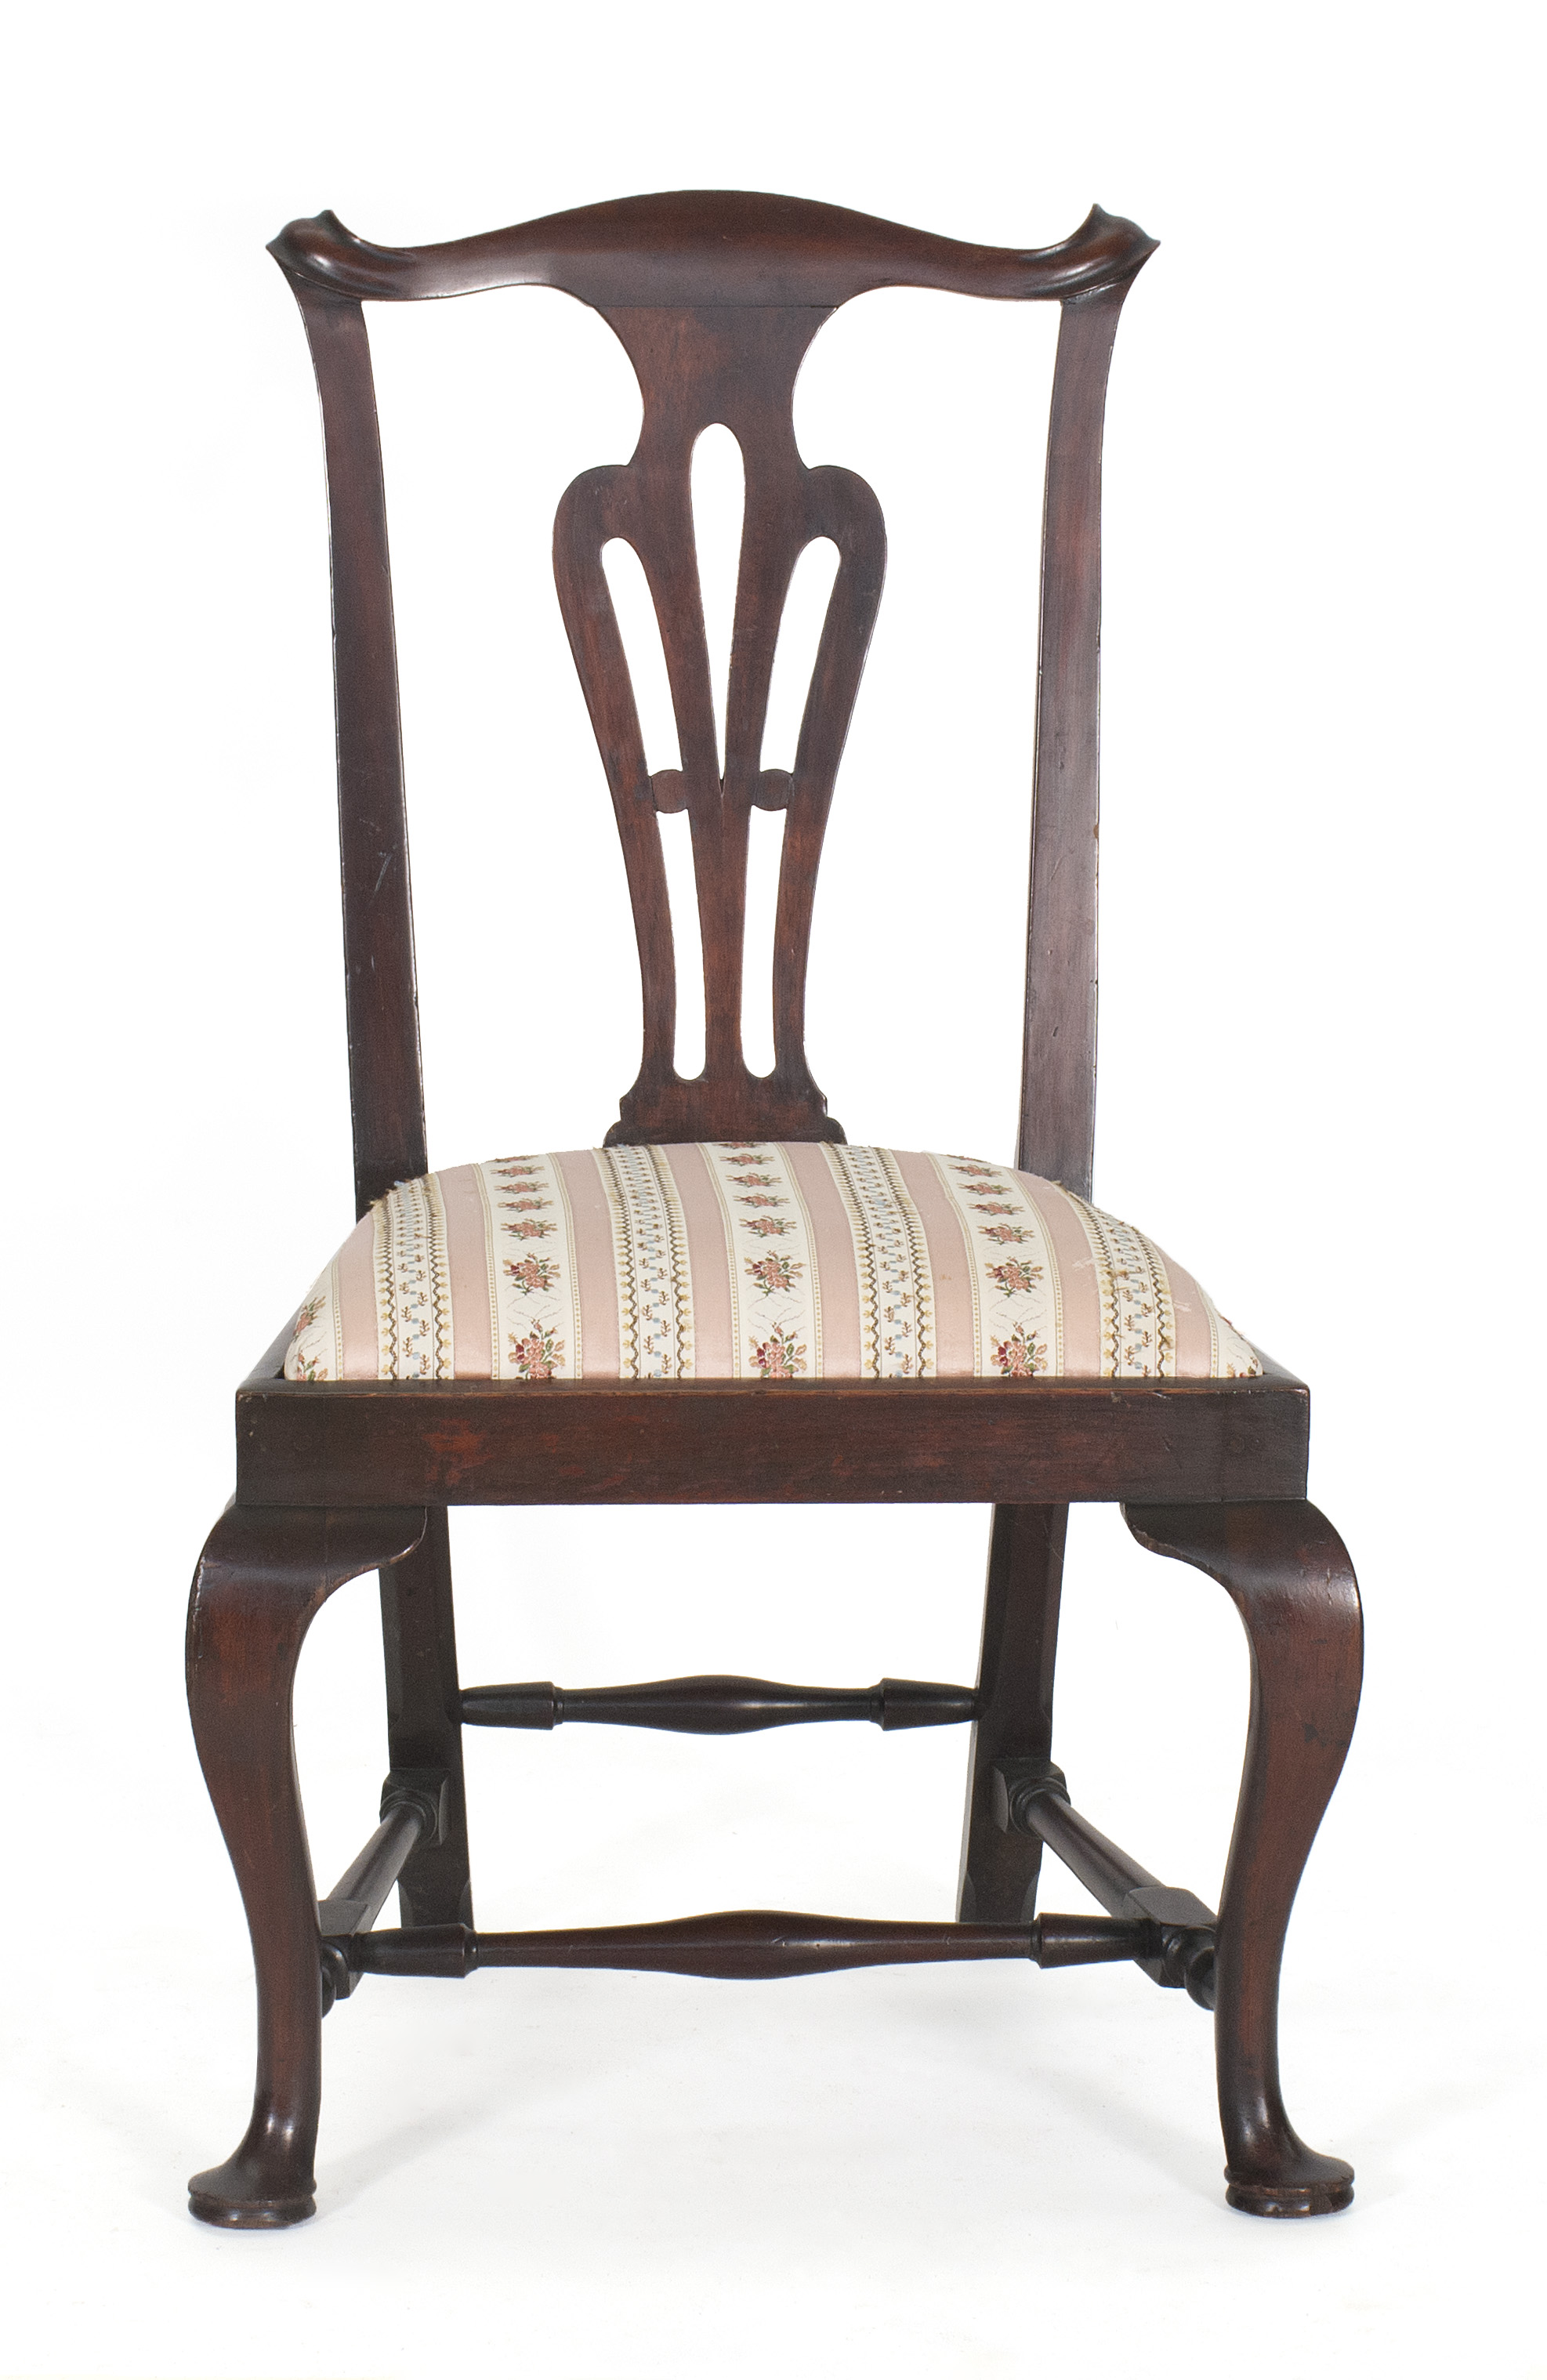 Price guide for ANTIQUE AMERICAN QUEEN ANNE SIDE CHAIR Boston,